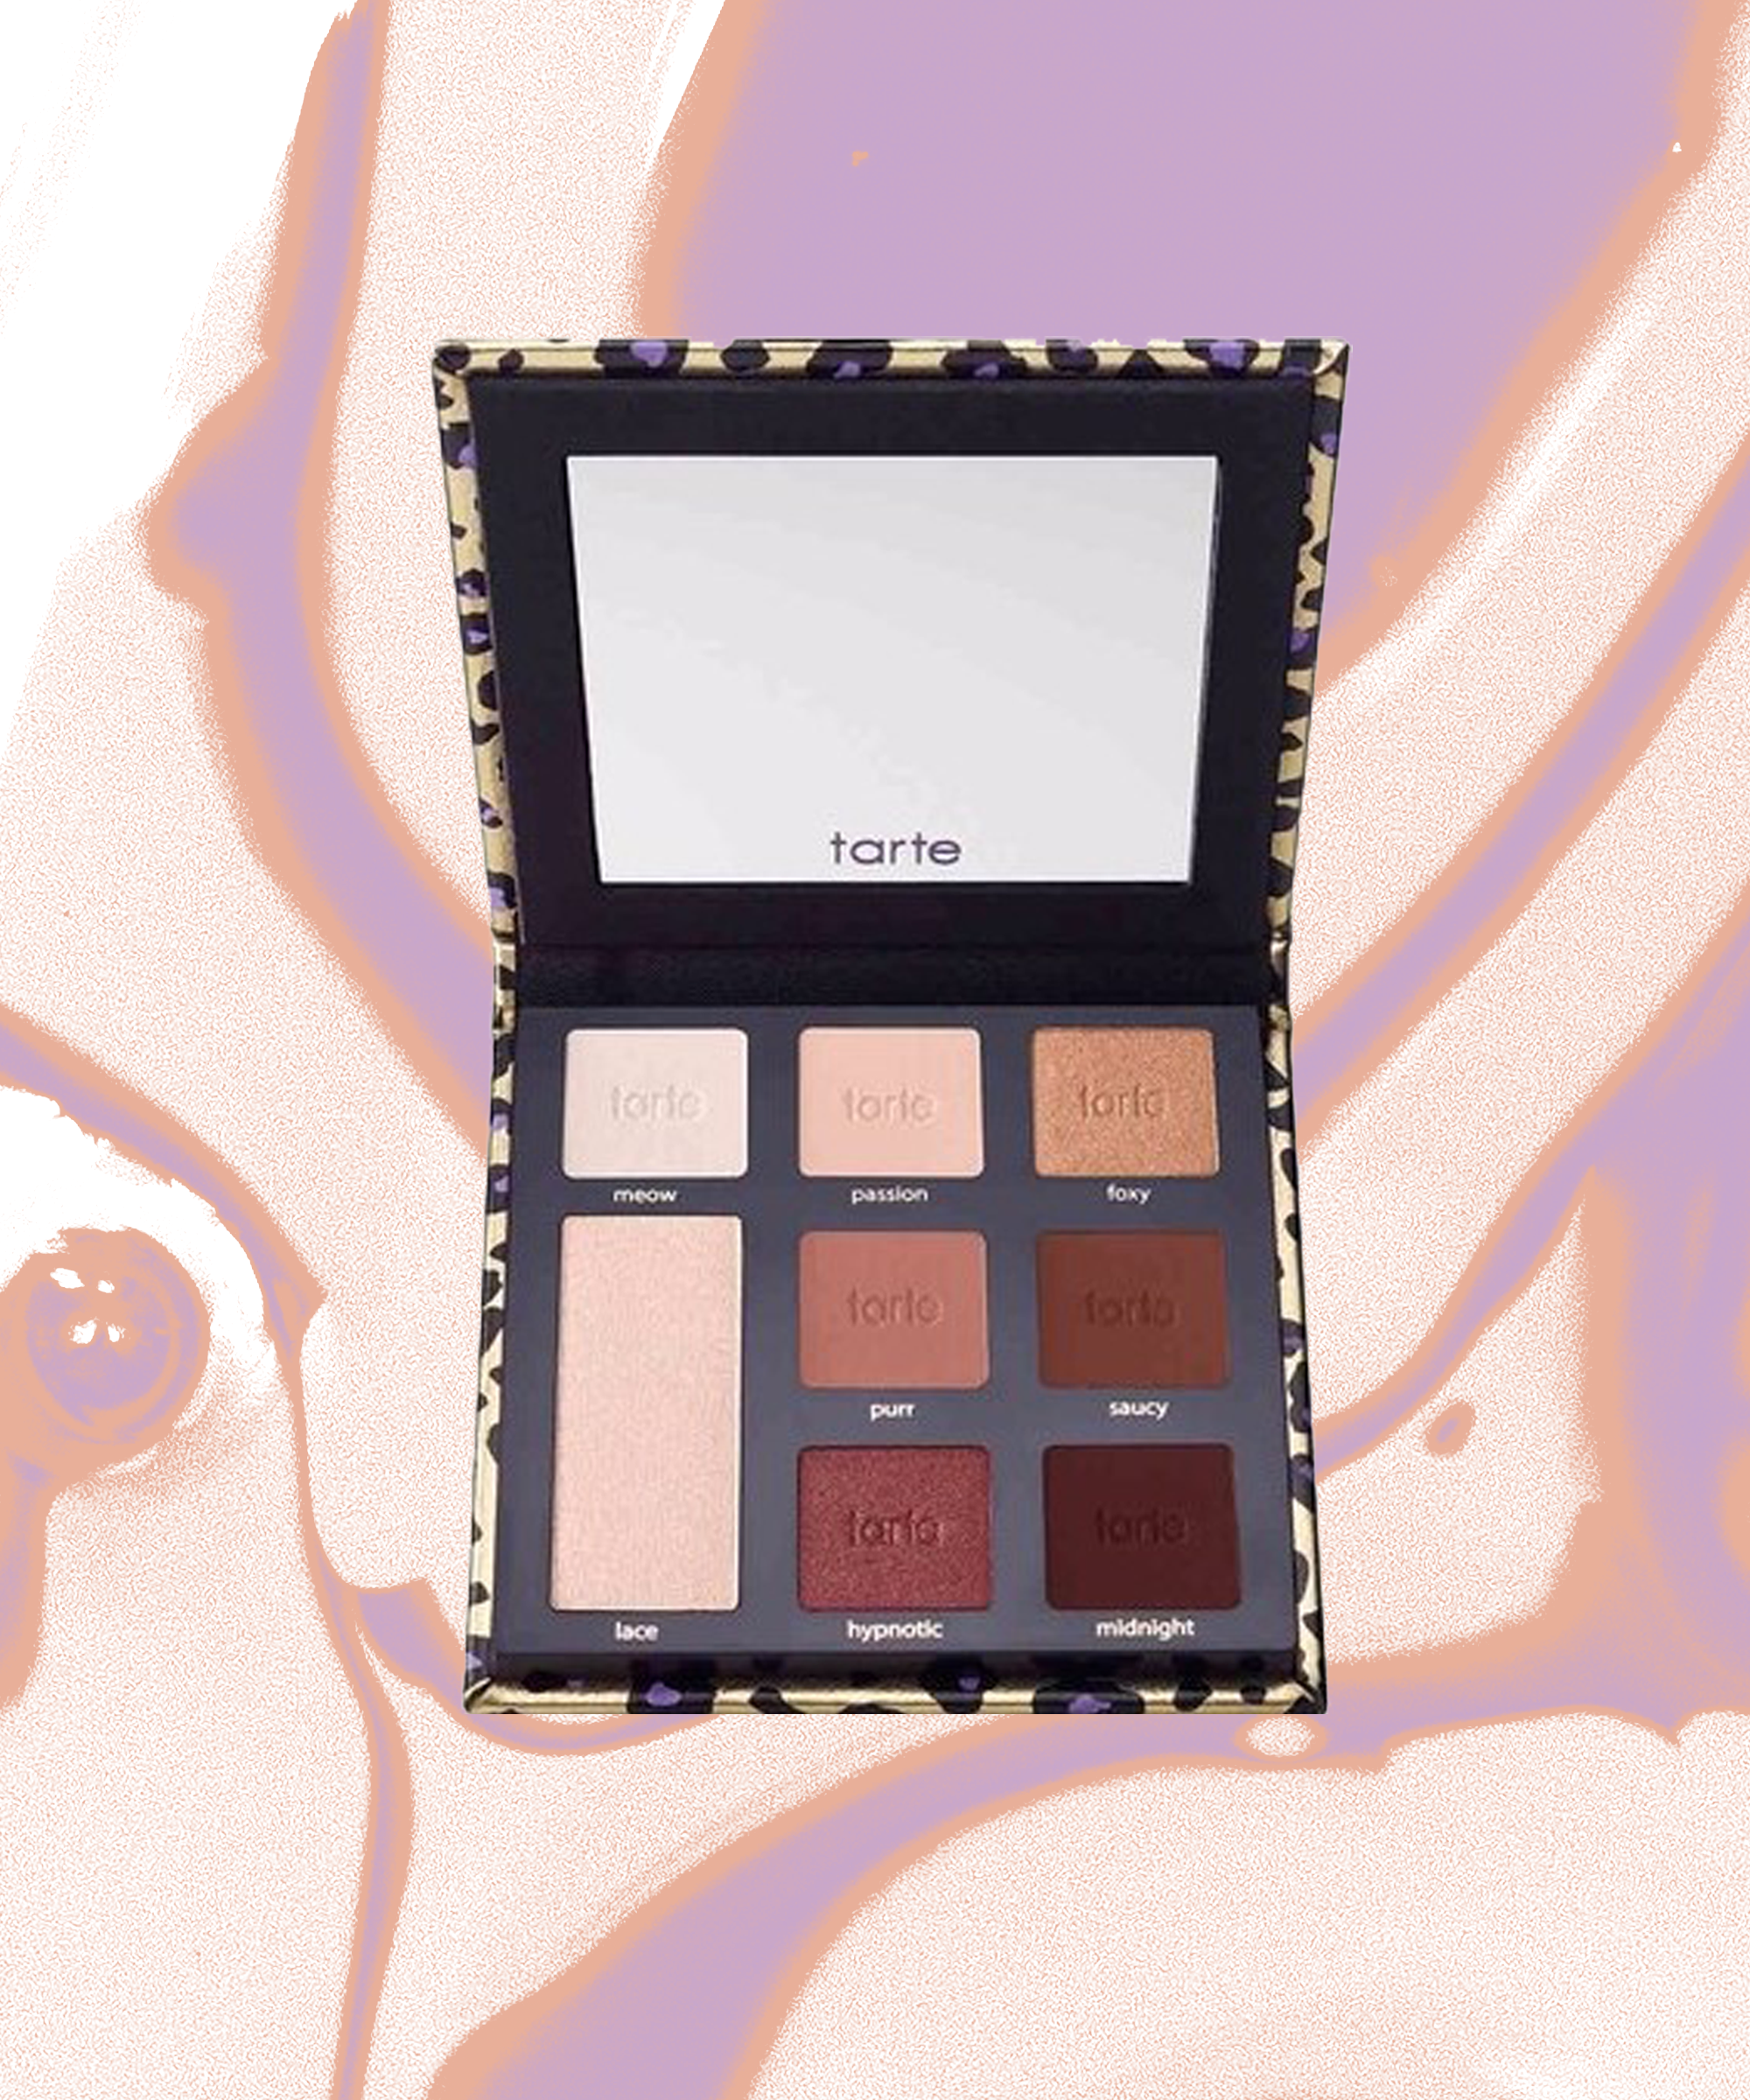 Tarte Cosmetics Maneater Eyeshadow Palette